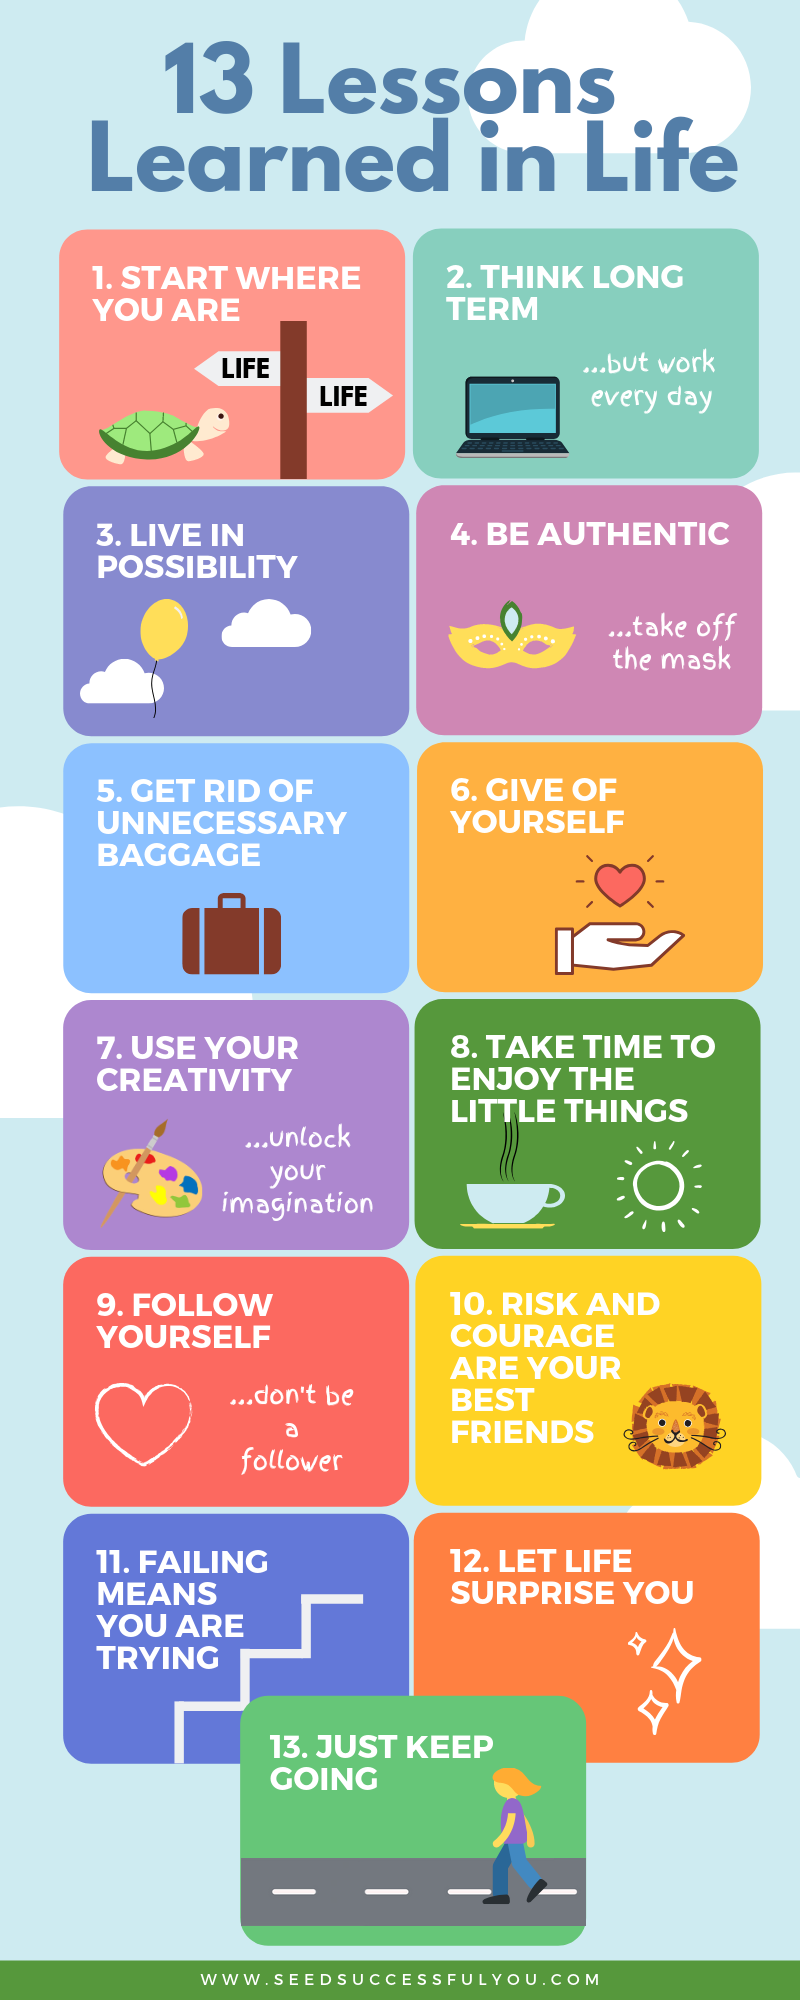 13 Important Lessons Learned in Life Lessons learned in